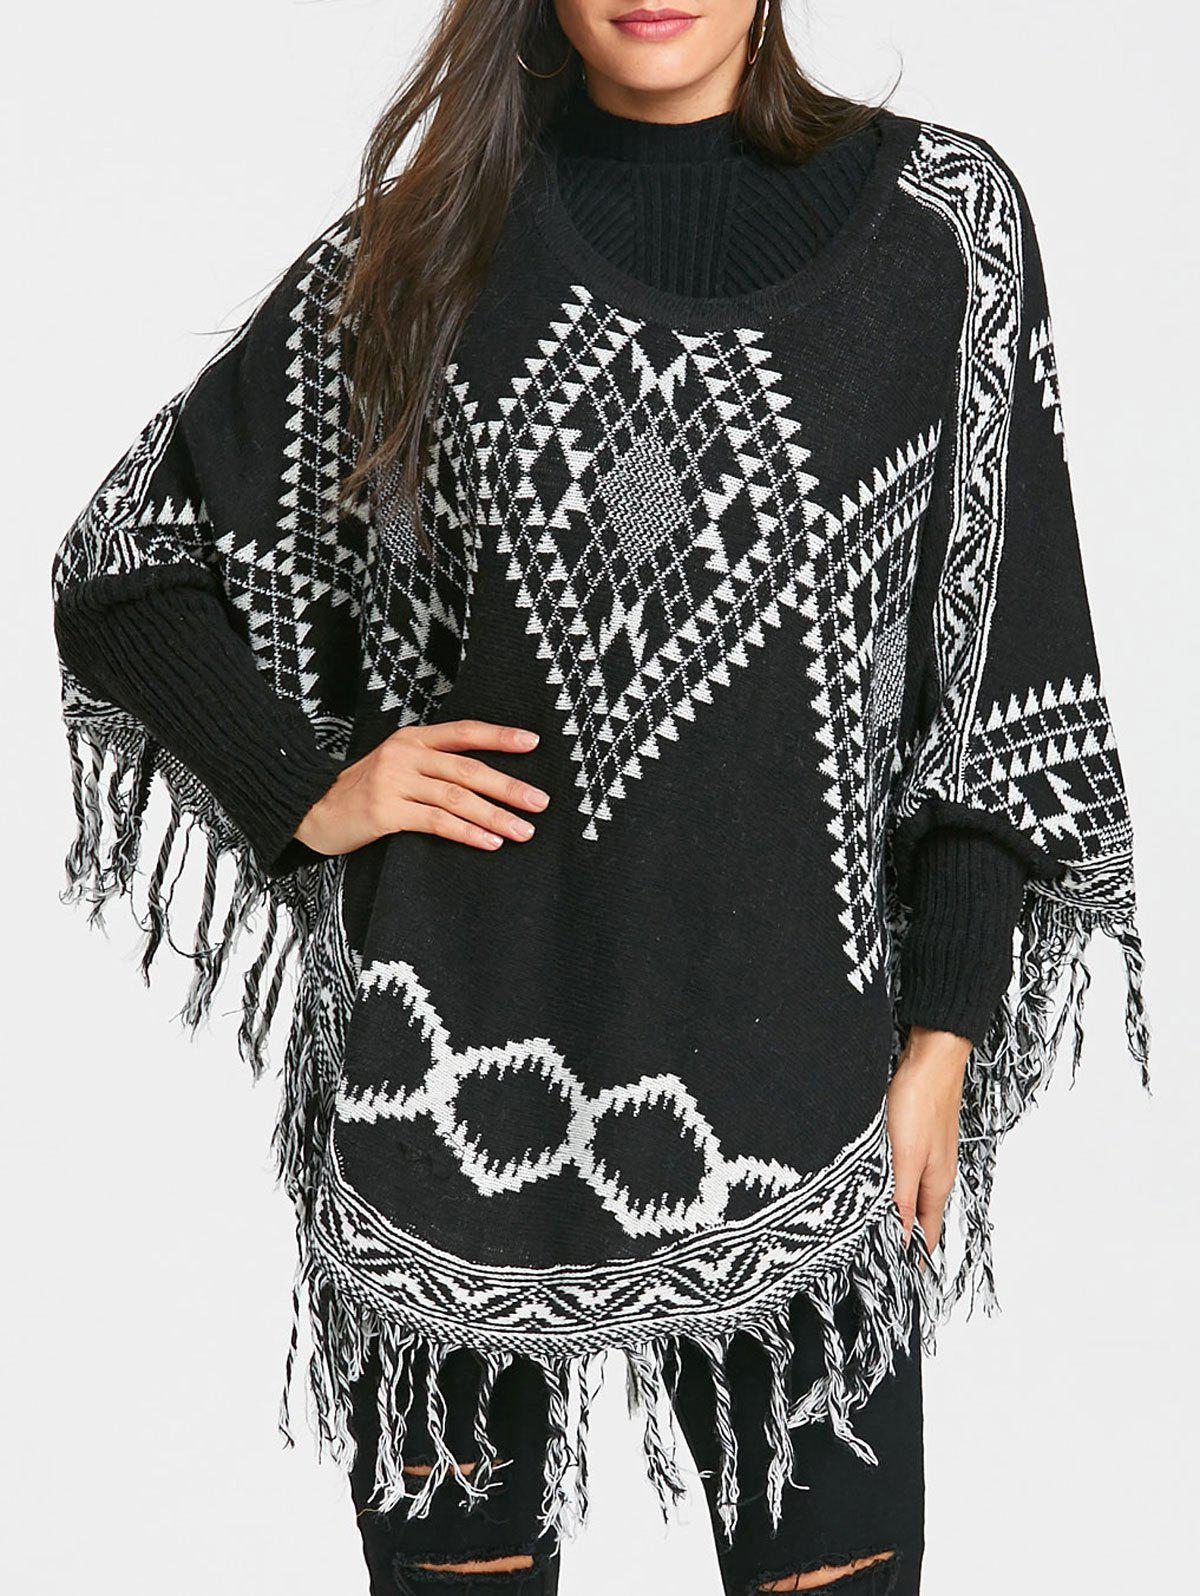 Fringed Argyle Tunic Poncho Sweater